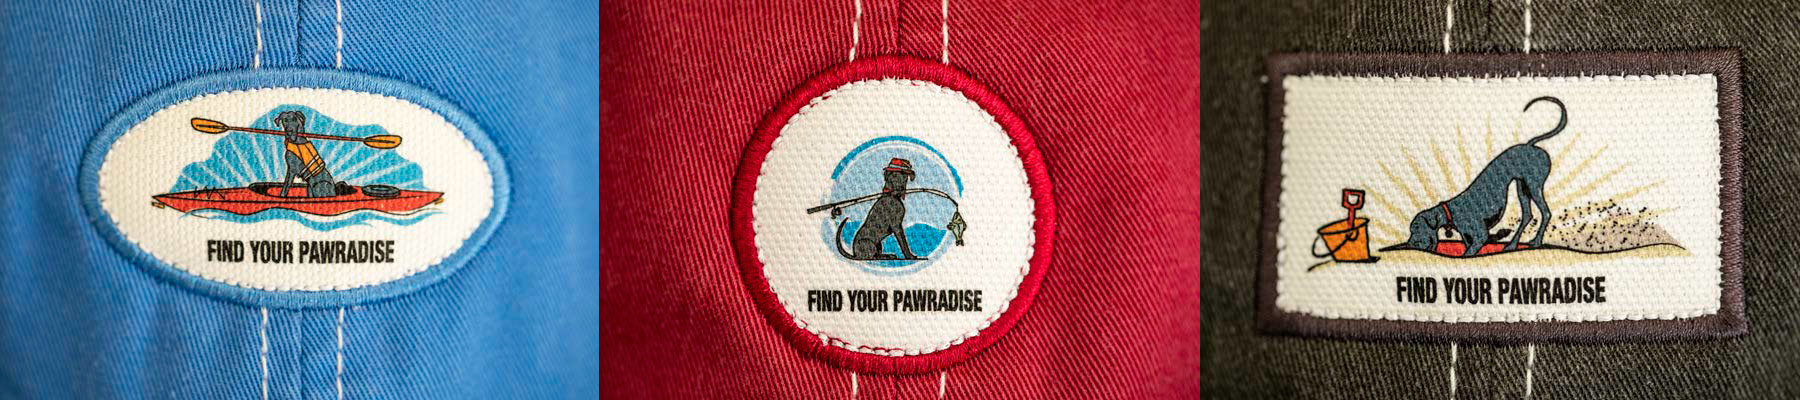 FIND YOUR PAWRADISE scenes